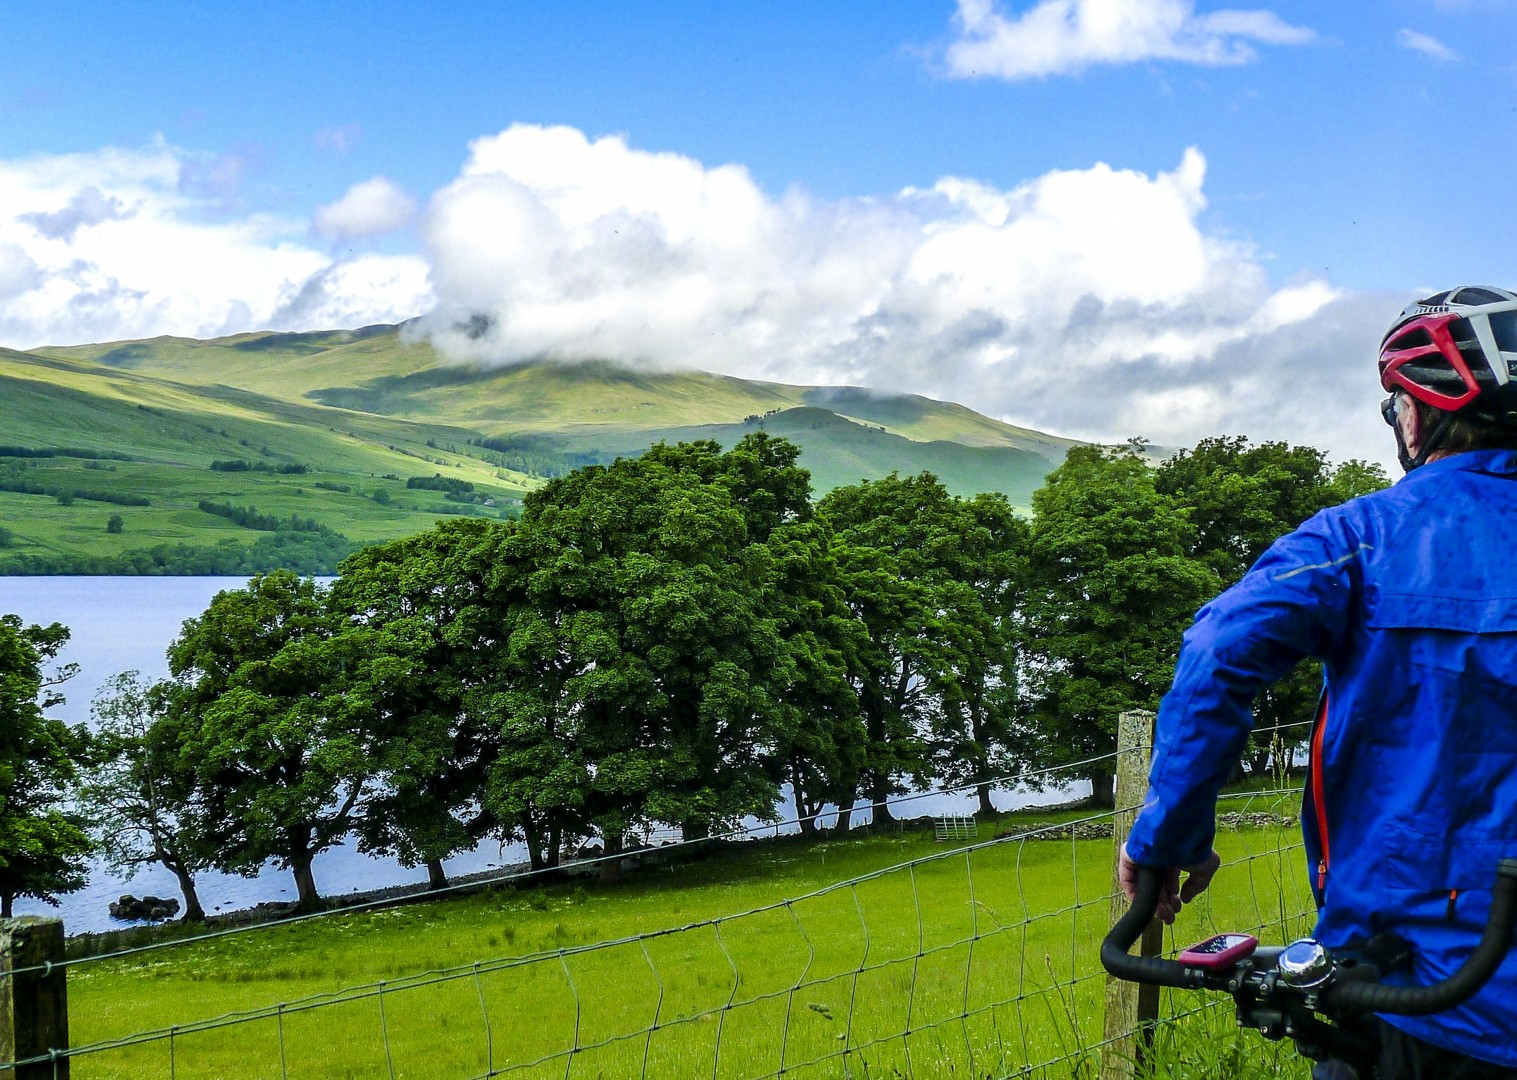 hills-cycling-fun-tour-scotland-uk-mountains-loch-lake-cycle-paths.jpg - UK - Scotland - Lochs and Glens - Self-Guided Family Cycling Holiday - Family Cycling